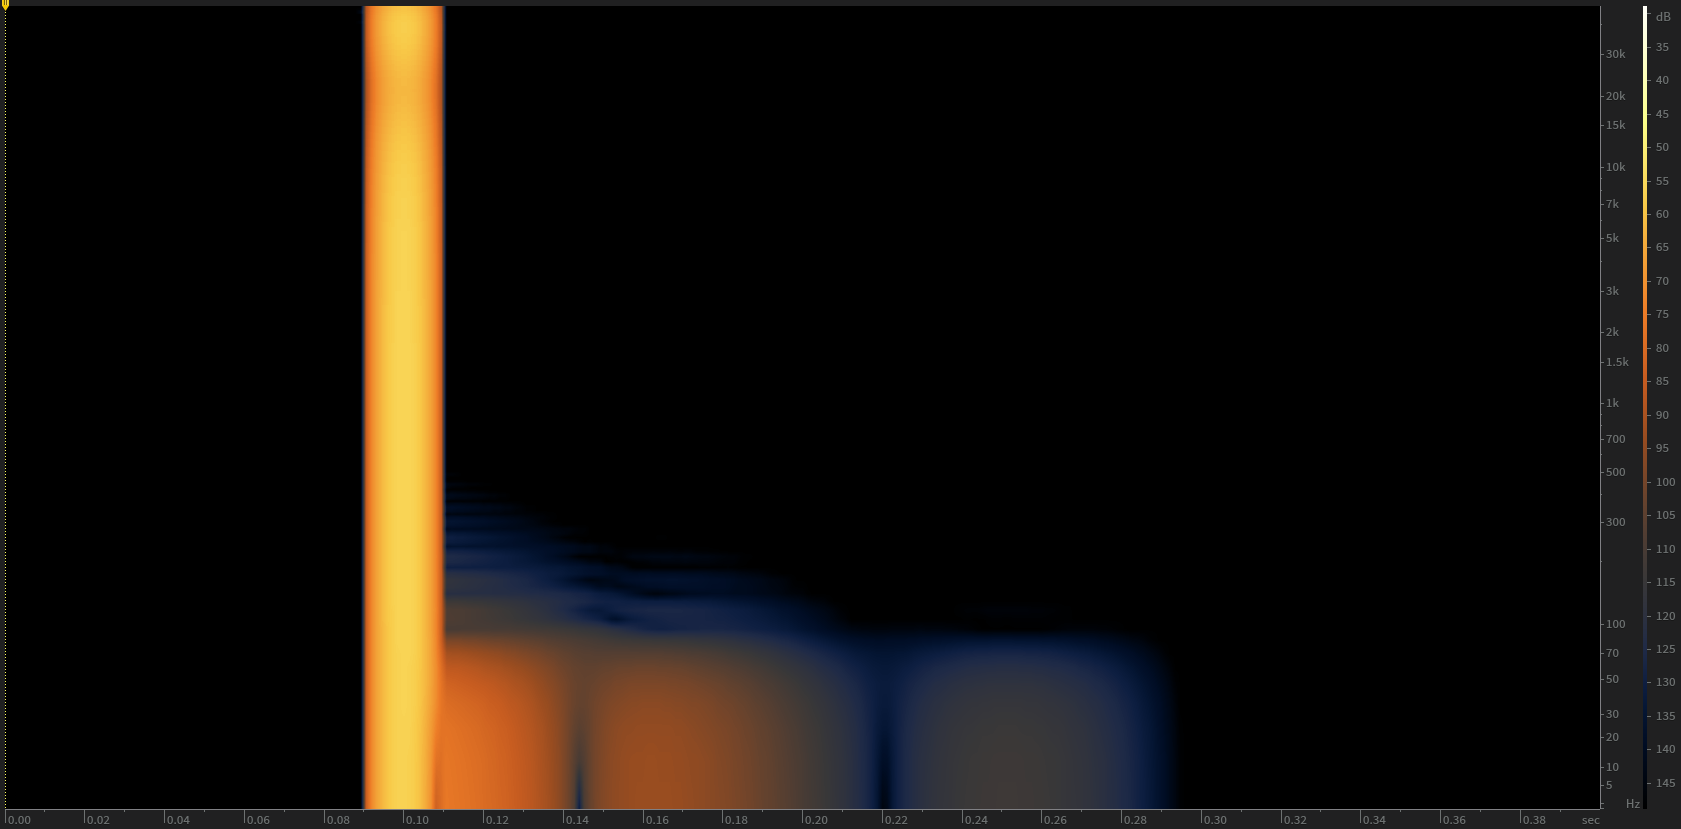 Spectrogram of an IR of an audio transformer. It can clearly be seen that there is an echo added by the resonances on the transformer. In this case it is about 200ms long.